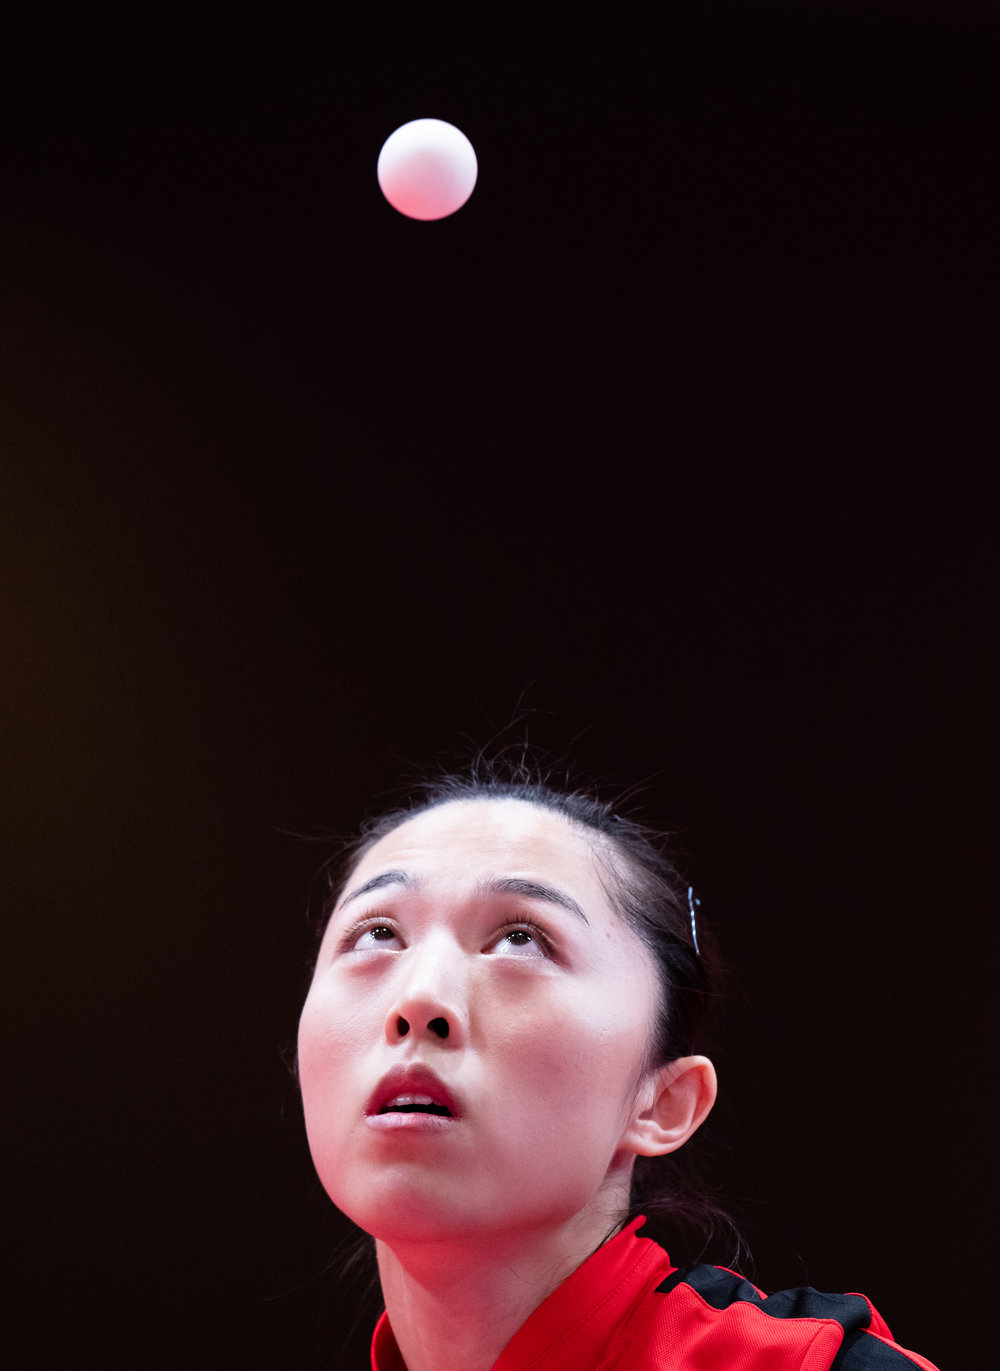 A Singaporean Table Tennis player watches the ball during the Asian Games at the Jakarta International Expo.